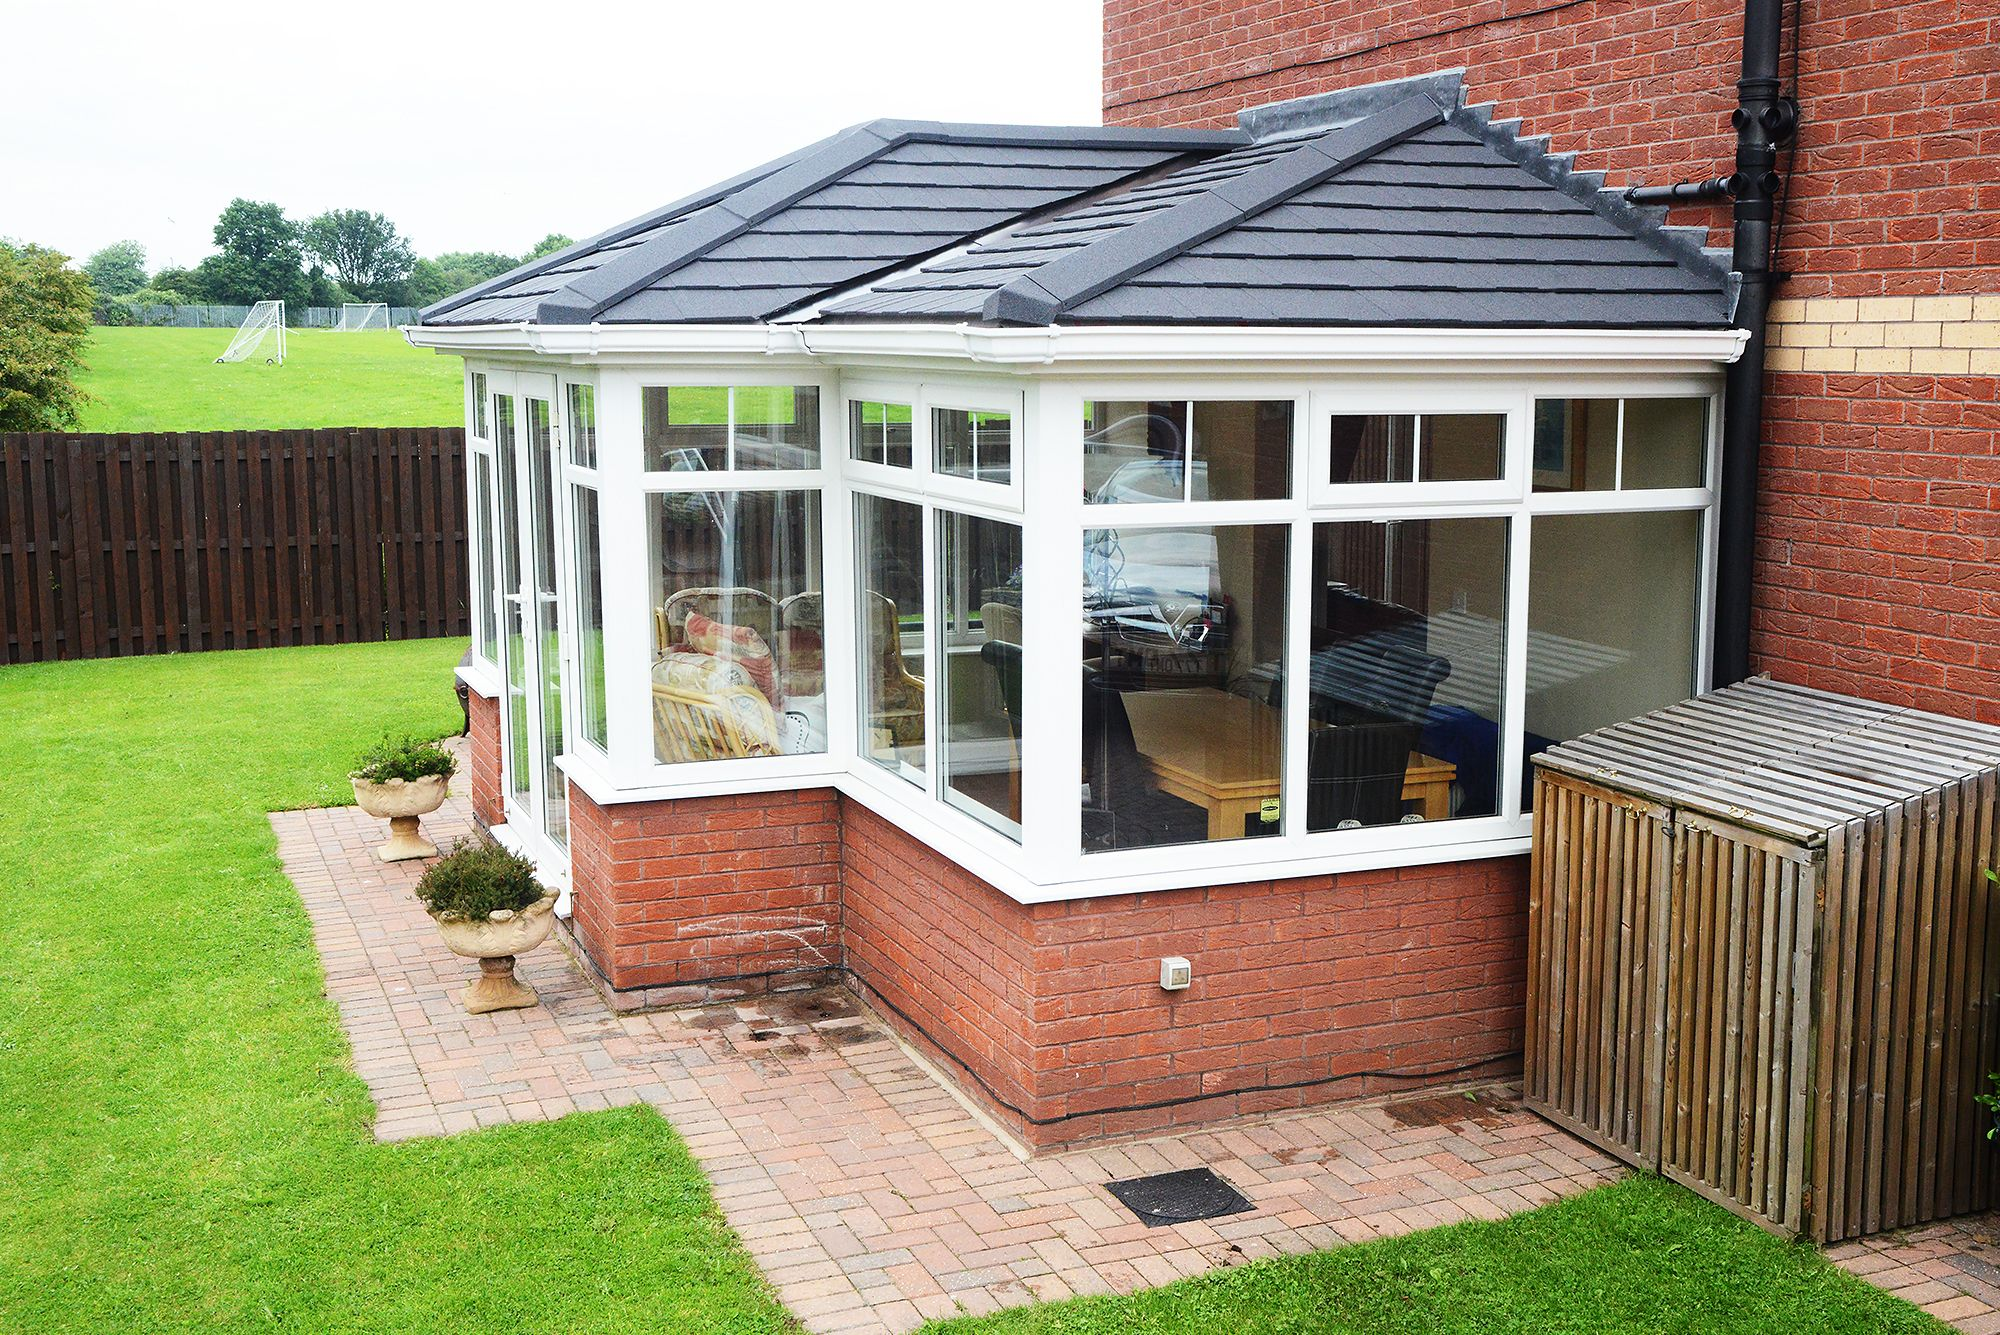 Stunning Tiled Conservatory Roof Supalite By Solarframe With Stunning Charcoal Metrolite Tiles Finished Tiled Conservatory Roof Roof Colors Painting Gutters